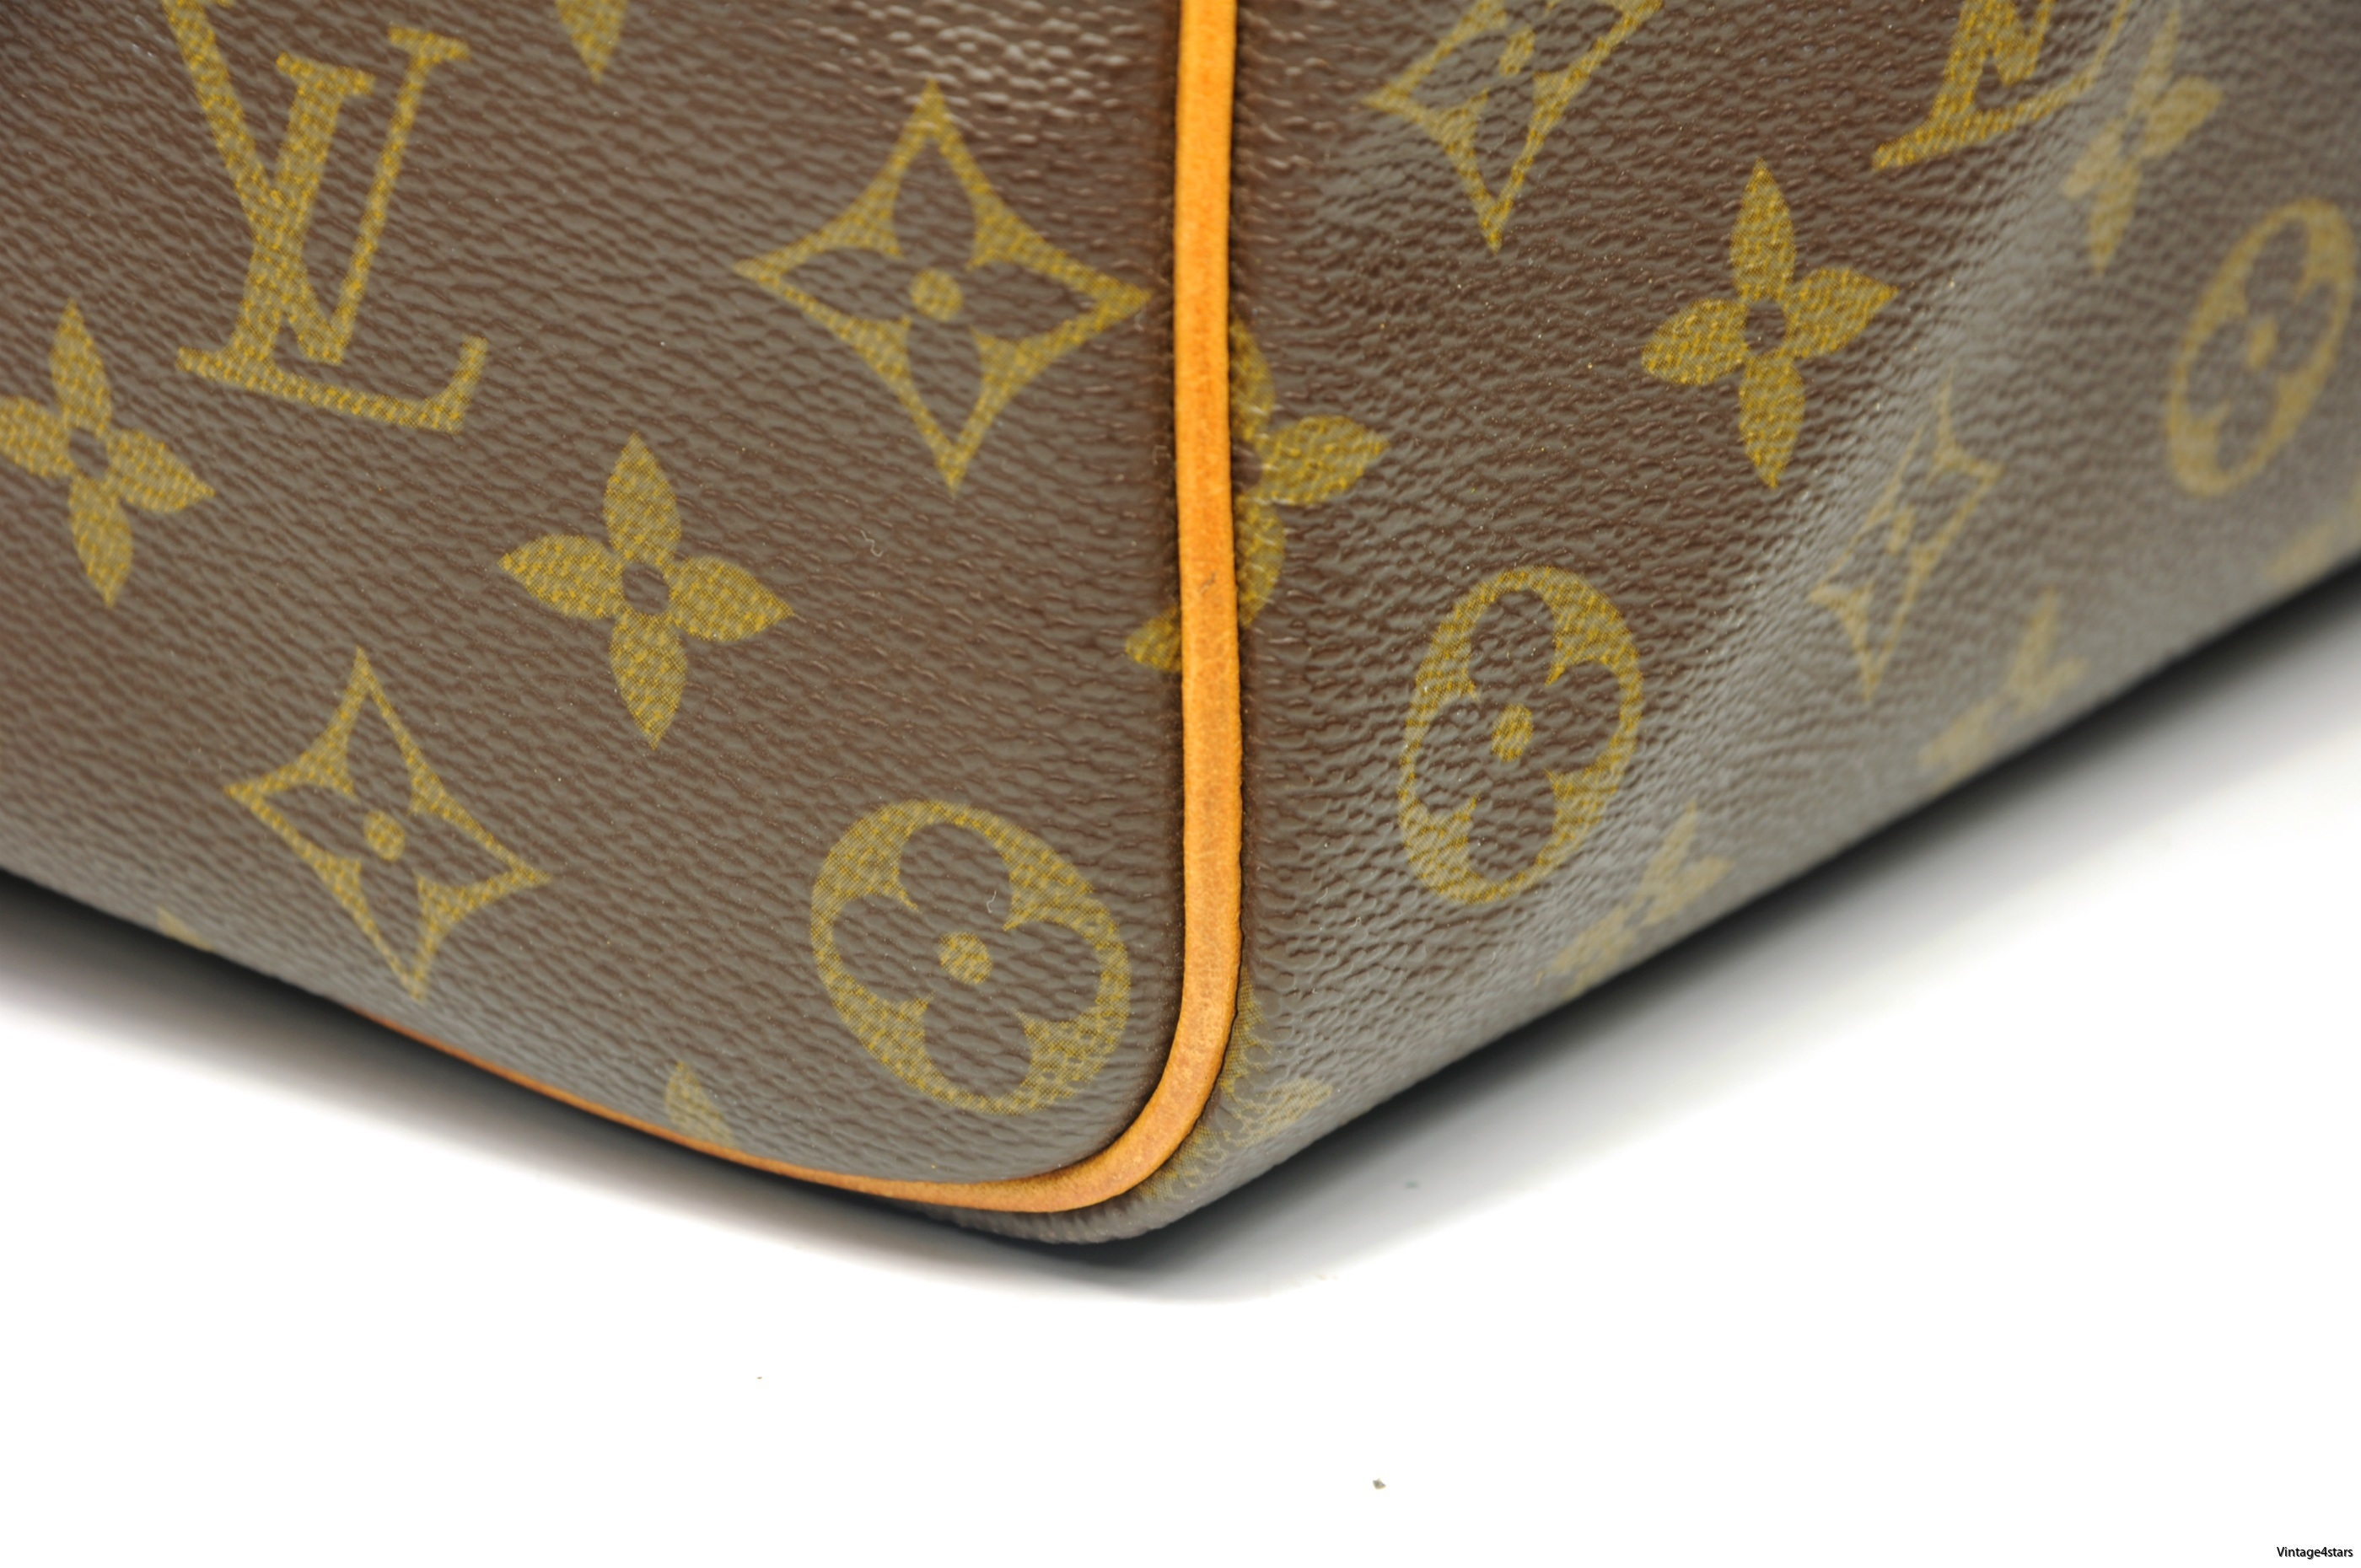 Louis Vuitton Speedy 35 Monogram 4